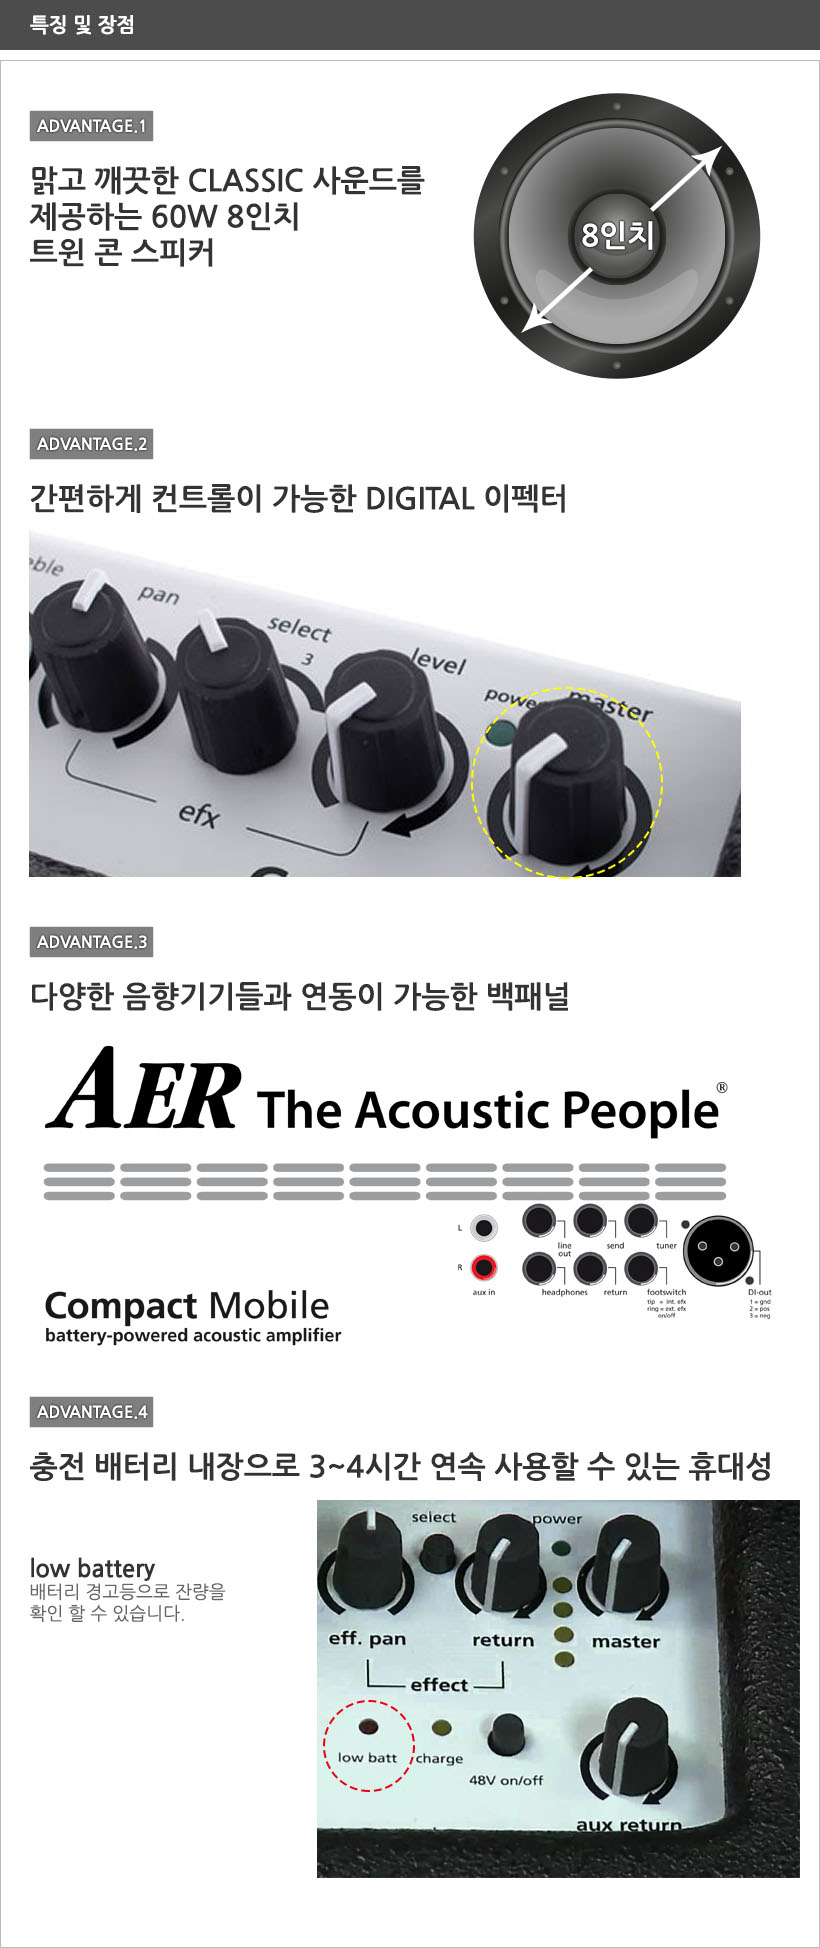 COMPACT MOBILE 특징 및 장점